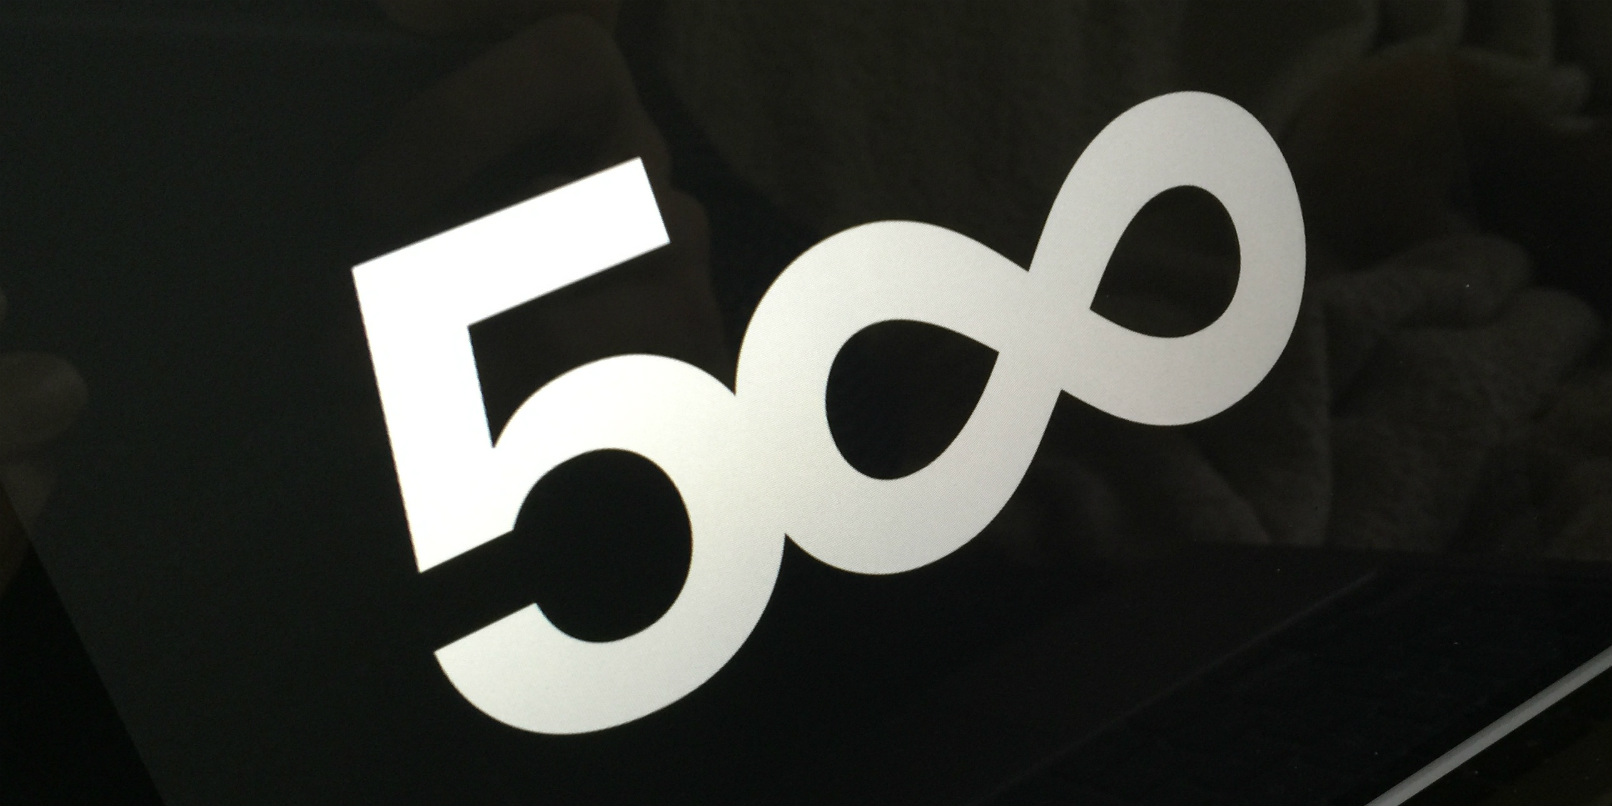 From co-founder to ousted CEO of 500px